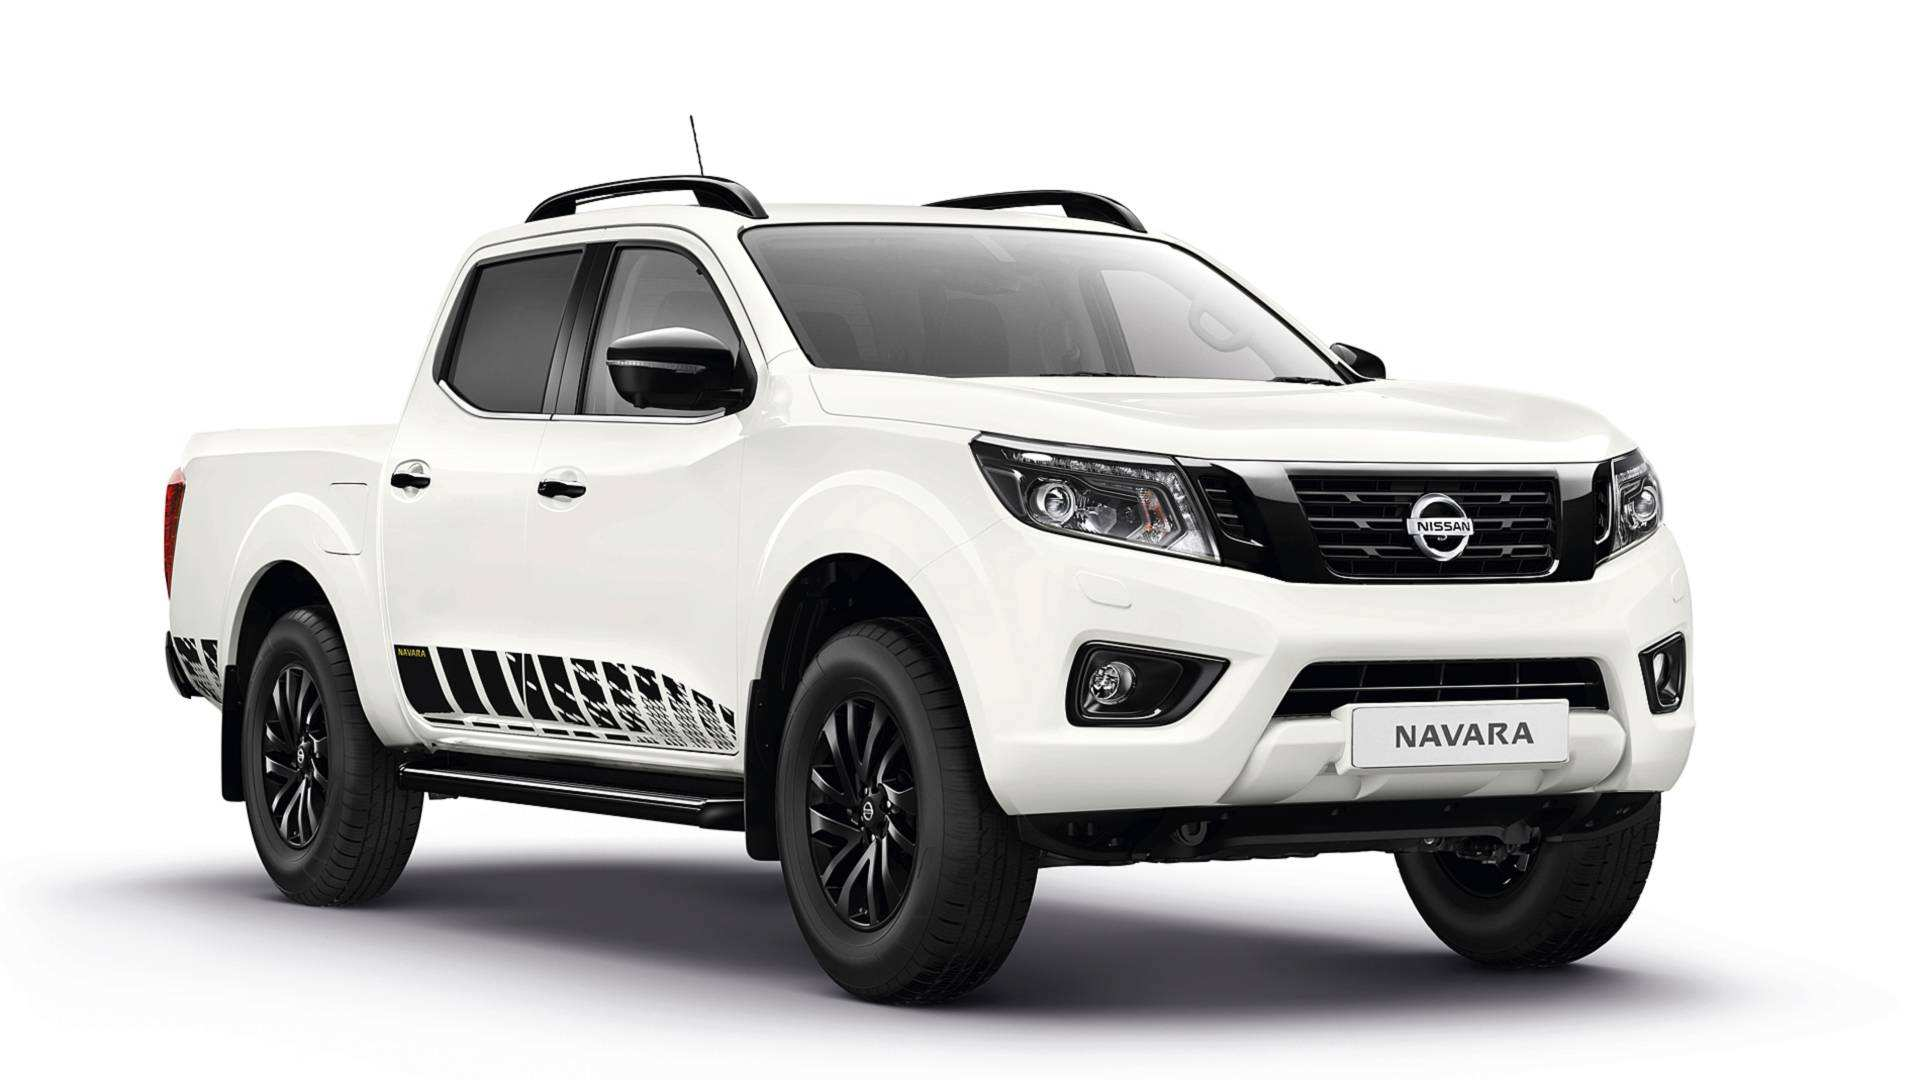 53 Best Review 2020 Nissan Navara Uk Performance and New Engine with 2020 Nissan Navara Uk